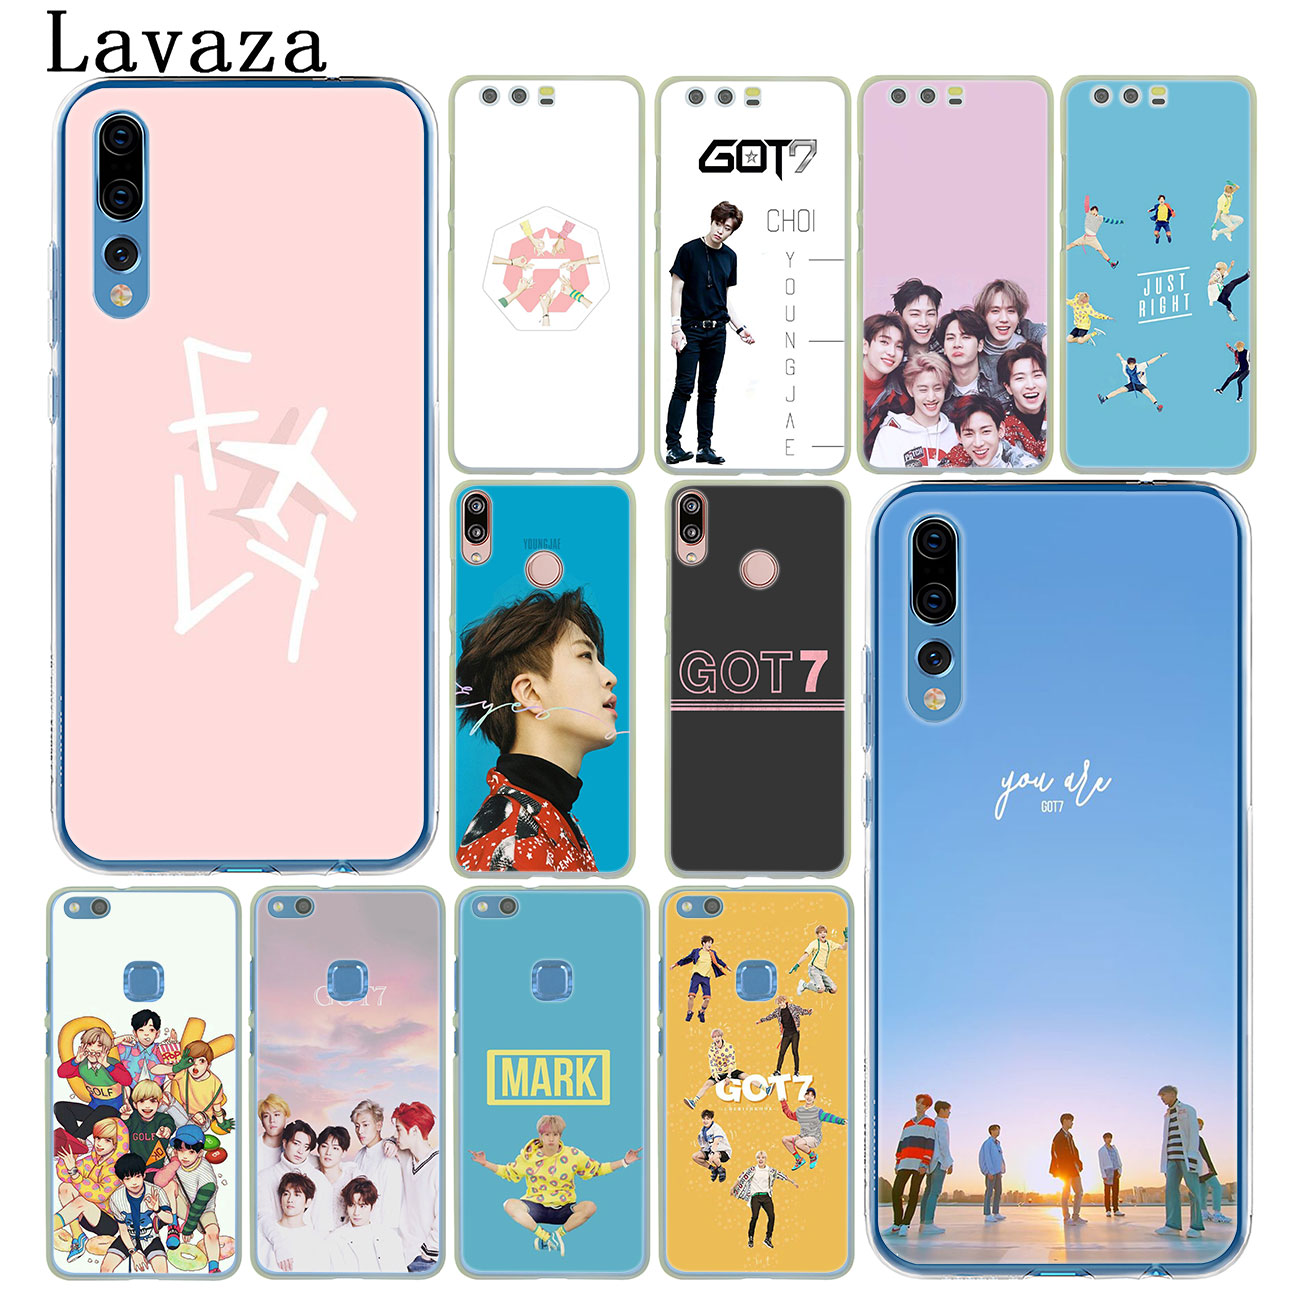 Phone Bags & Cases Flight Tracker The Weeknd Starboy Pop Singer Soft Tpu Mobile Phone Case Cover For Huawei P Smart Honor 4c 5c 6a 6x 7x 8x 9 Lite V8 V9 Play V10 Half-wrapped Case